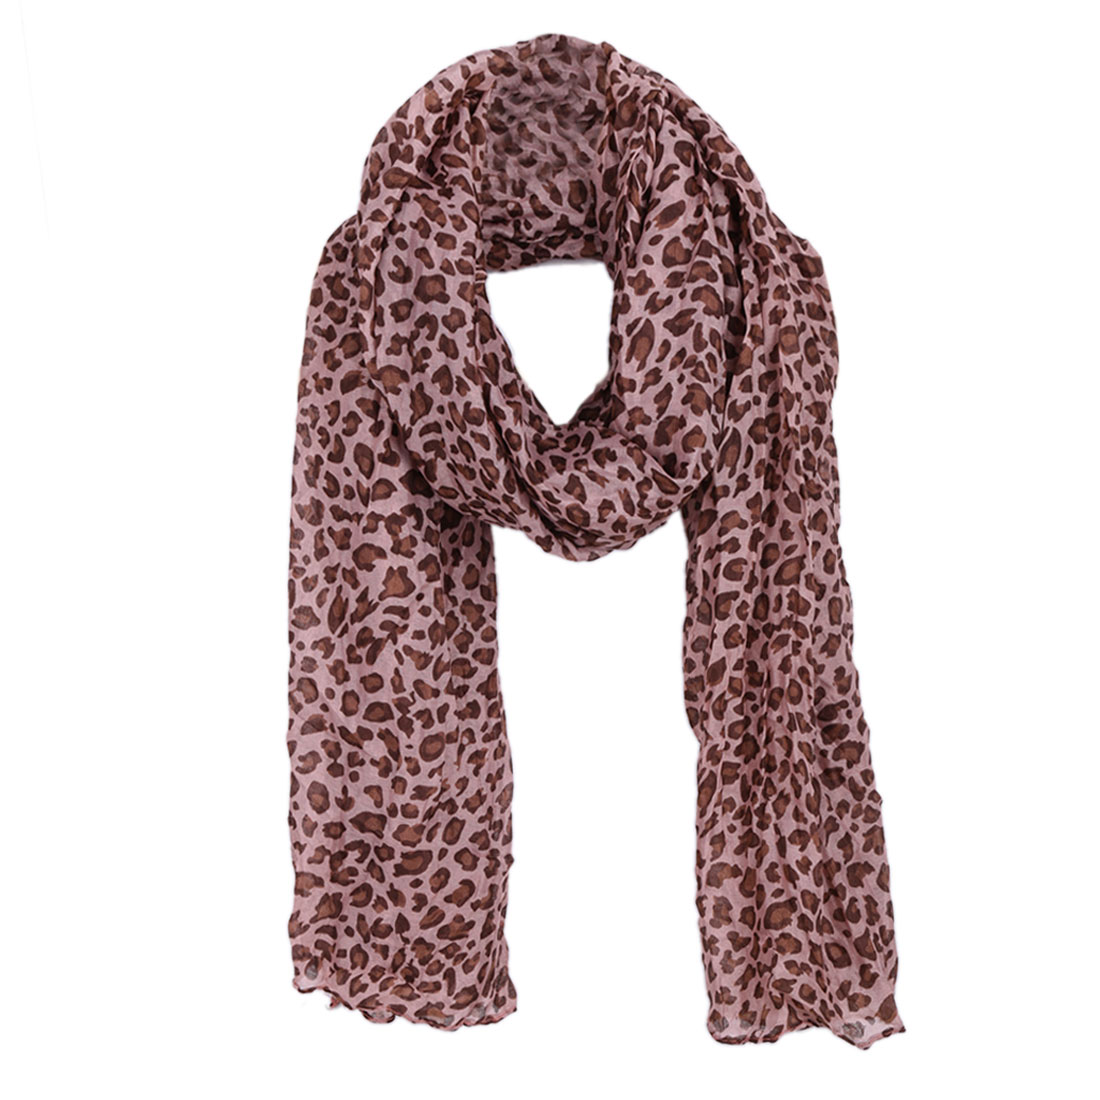 Women Leopard Prints Casual Scarf Pale Pink Coffee